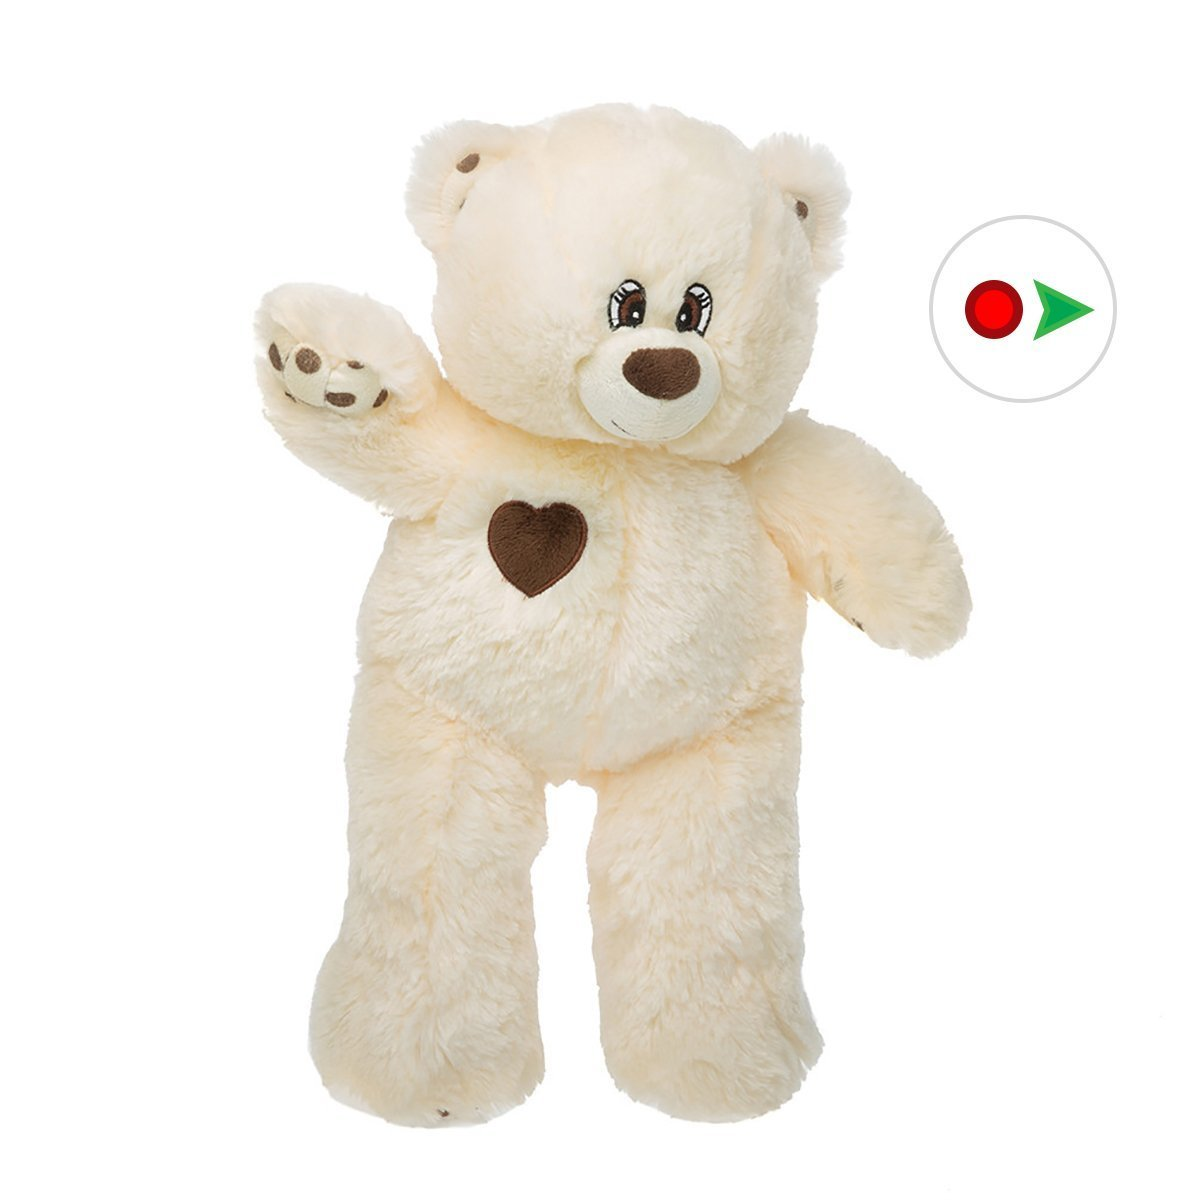 Record Your Own Plush 16 inch Sweet Heart Bear - Ready To Love In A Few Easy Steps